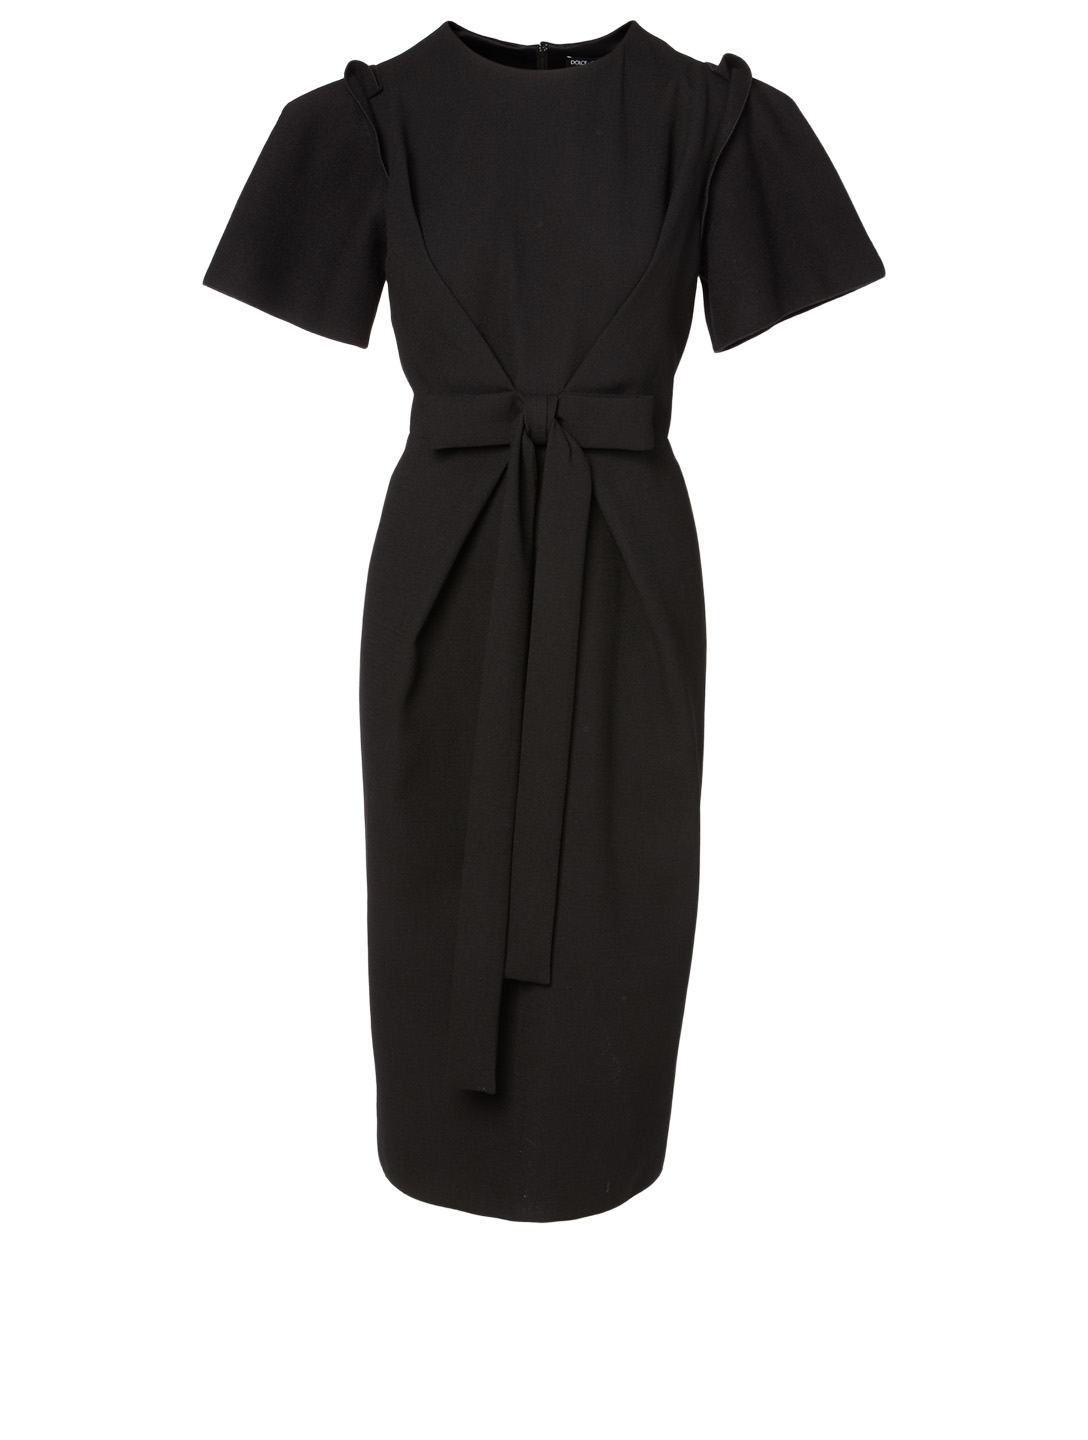 DOLCE & GABBANA Wool Stretch Midi Dress Women's Black